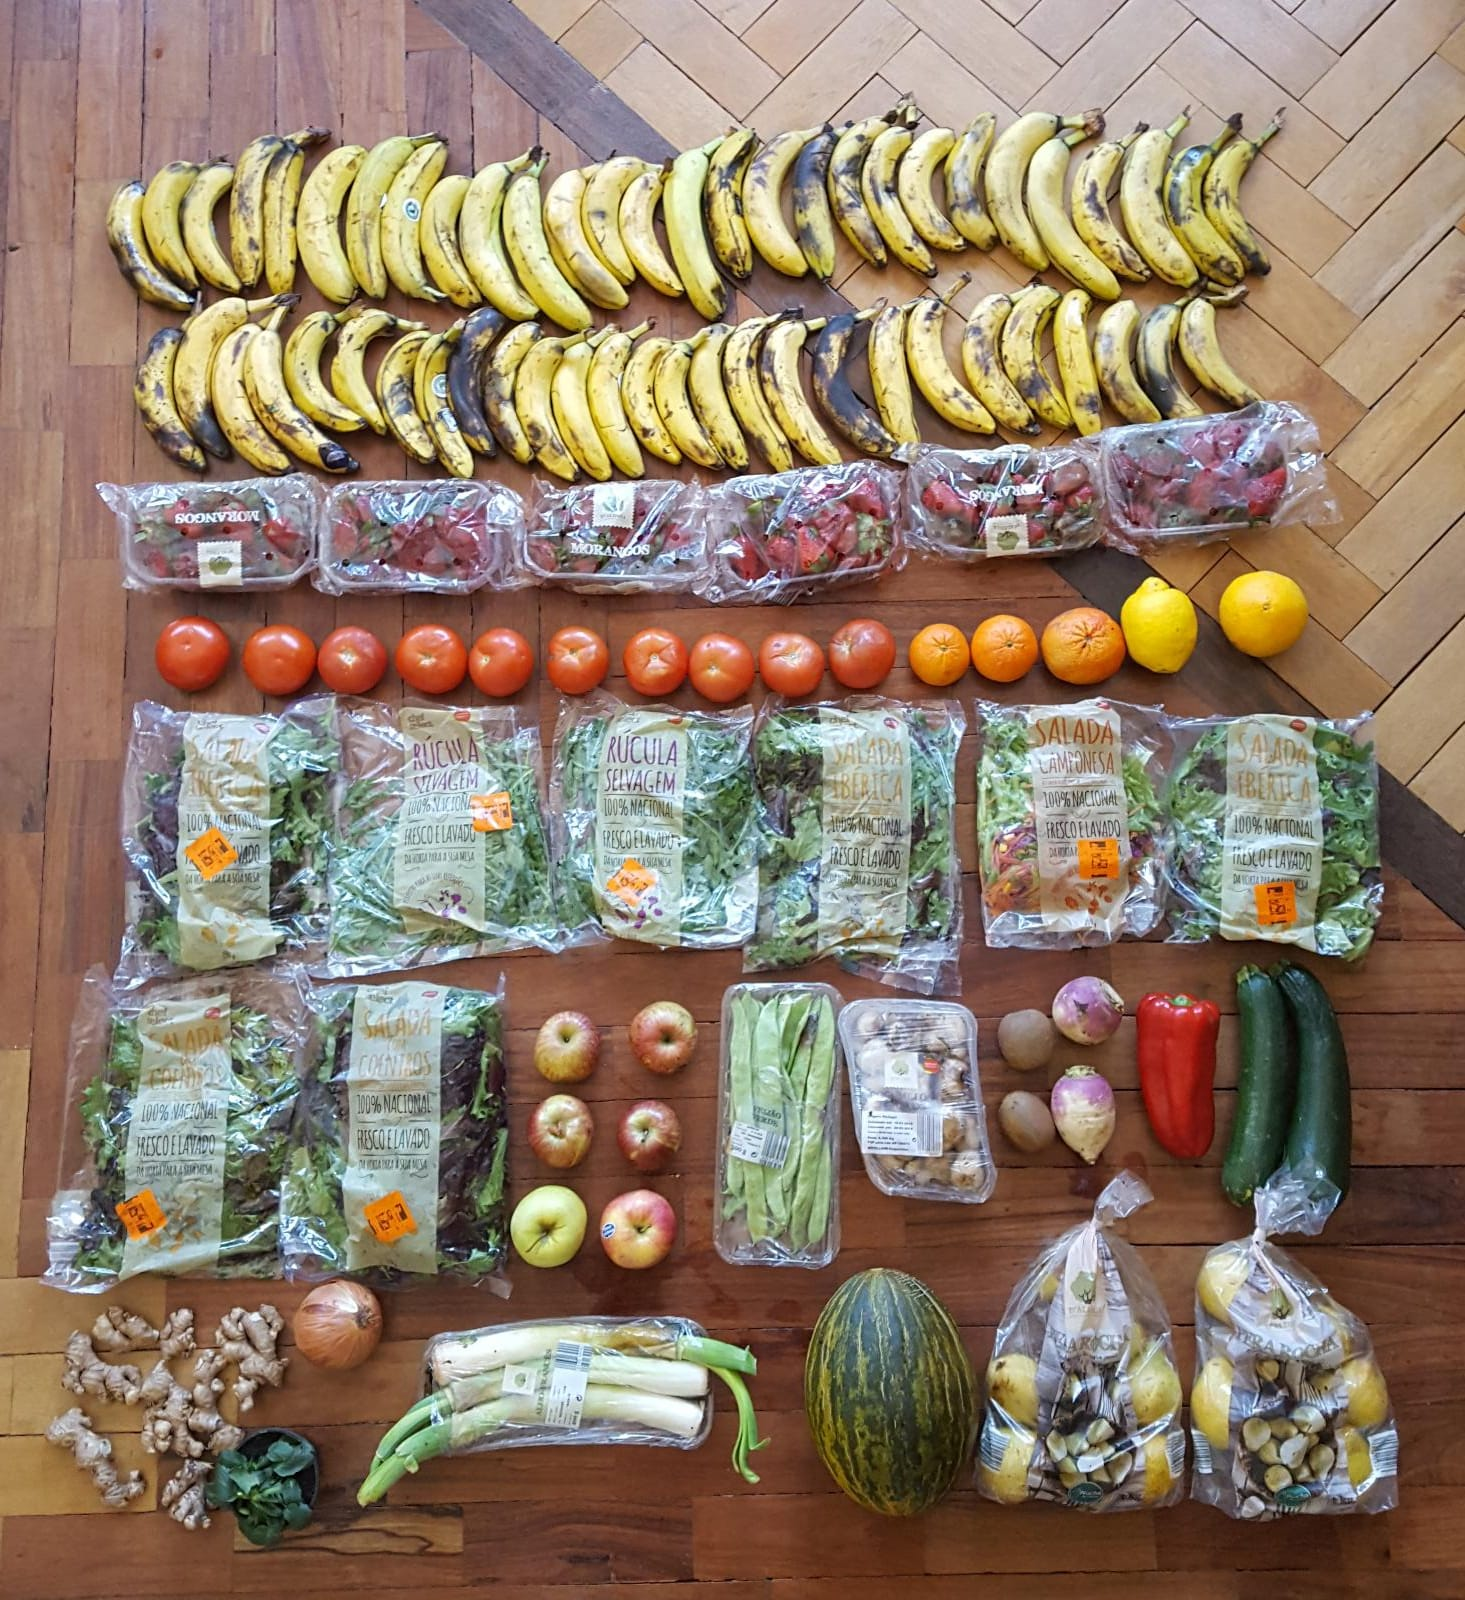 Fruits of dumpster diving! Credit: Anna Masiello